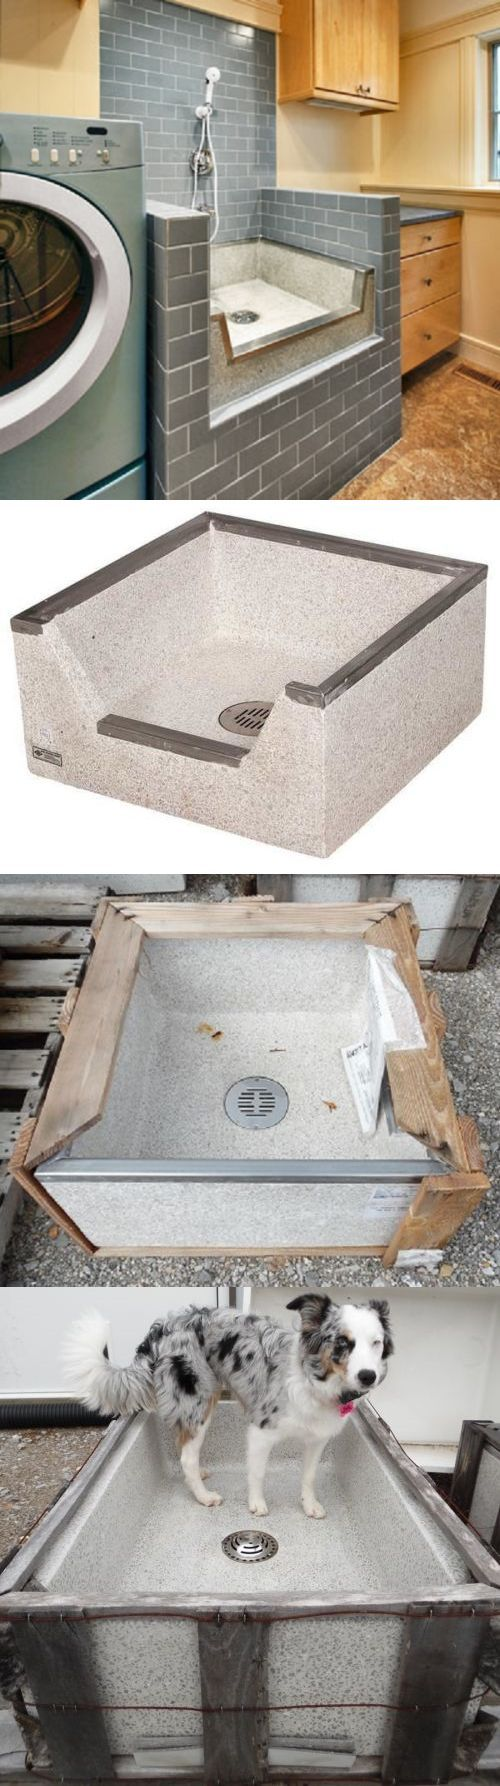 Other Dog Grooming 177794: Pet Washing Station Sink Shower Basin Terrazzo Ware Concrete BUY IT NOW ONLY: $909.99